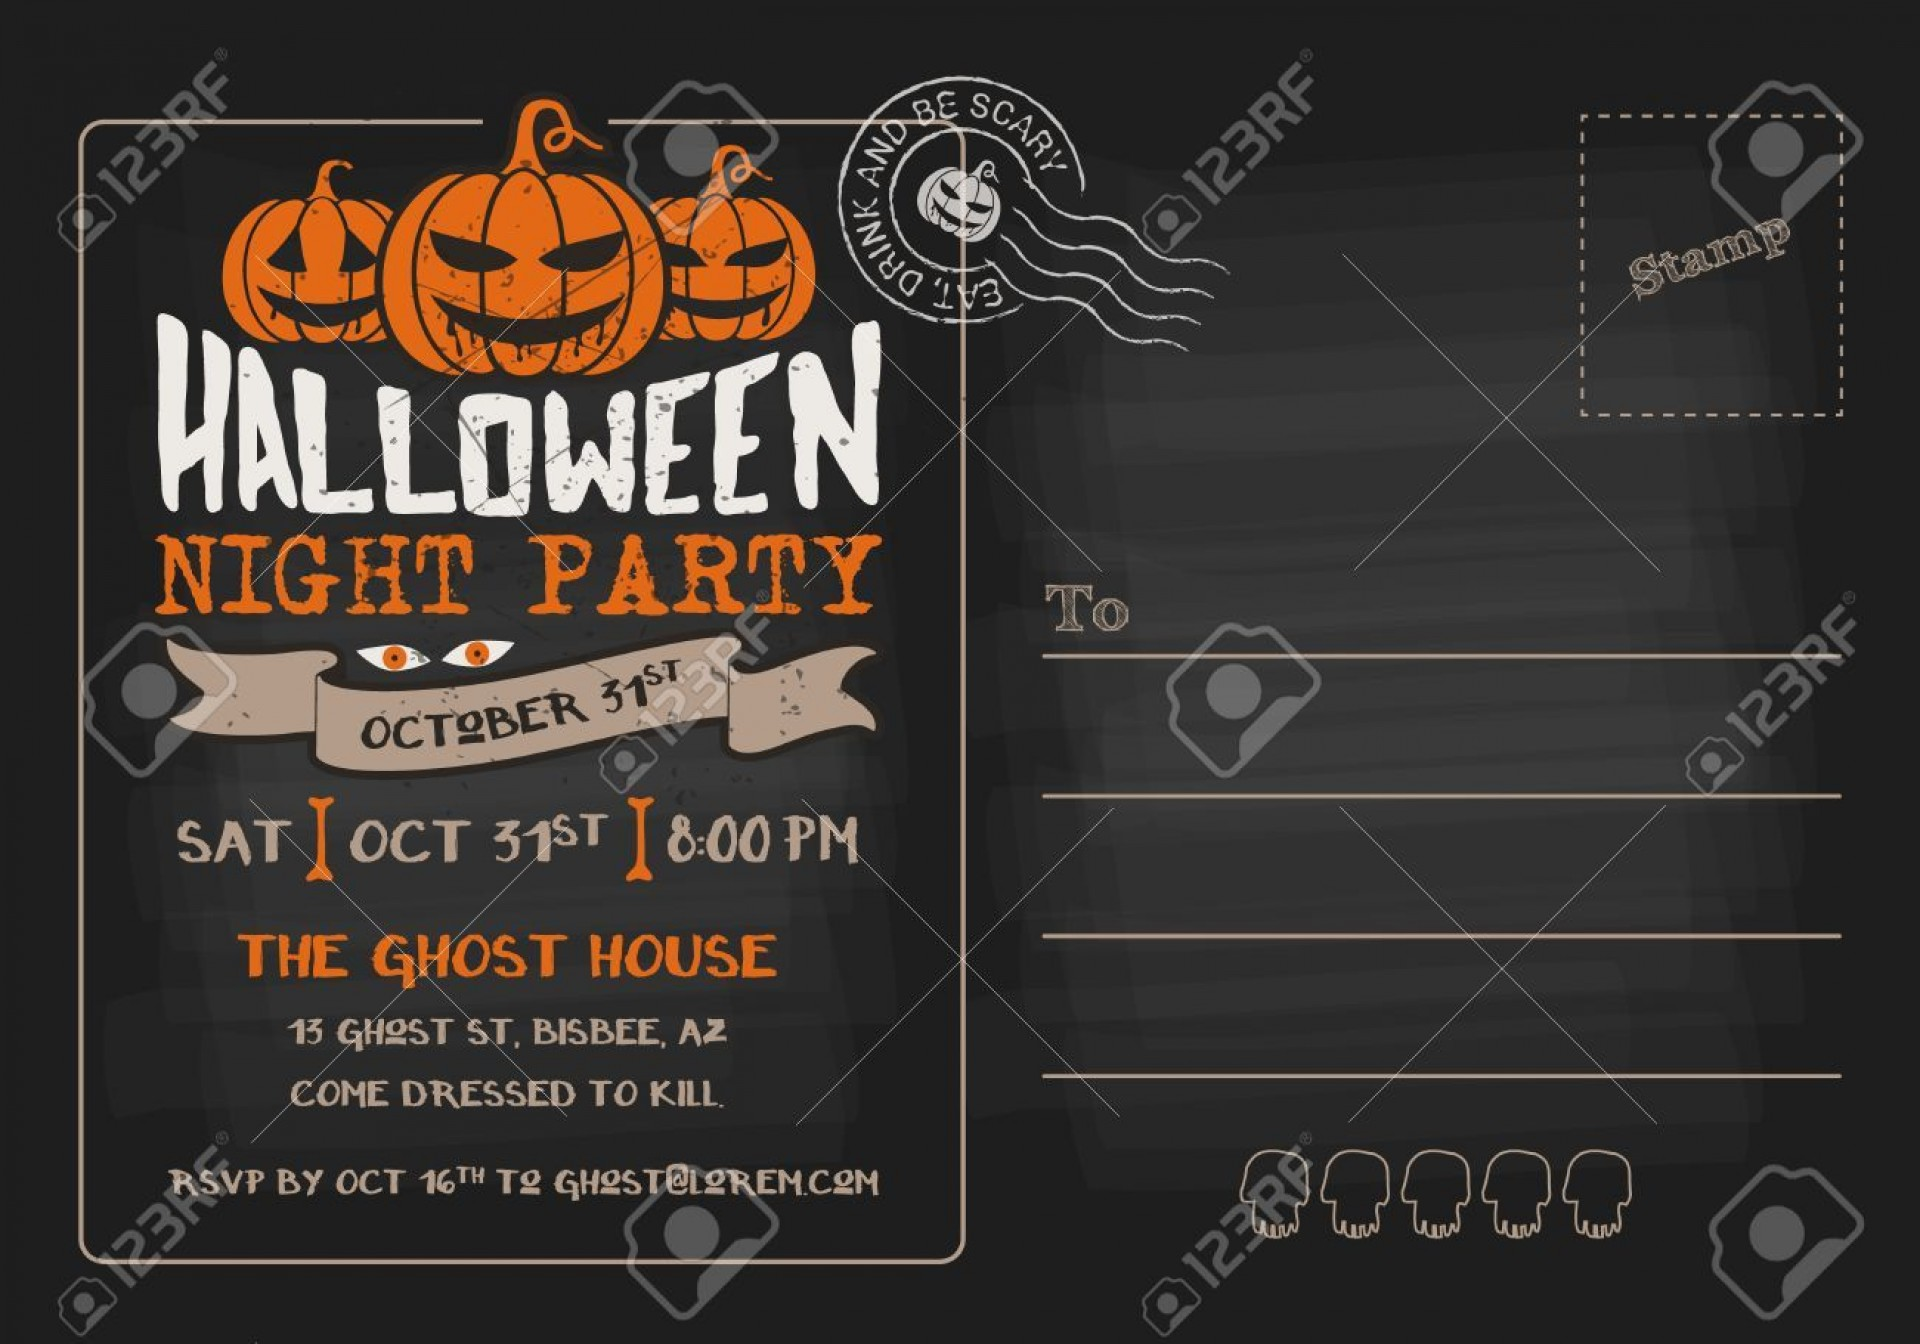 003 Marvelou Halloween Party Invitation Template Concept  Templates Scary Spooky1920